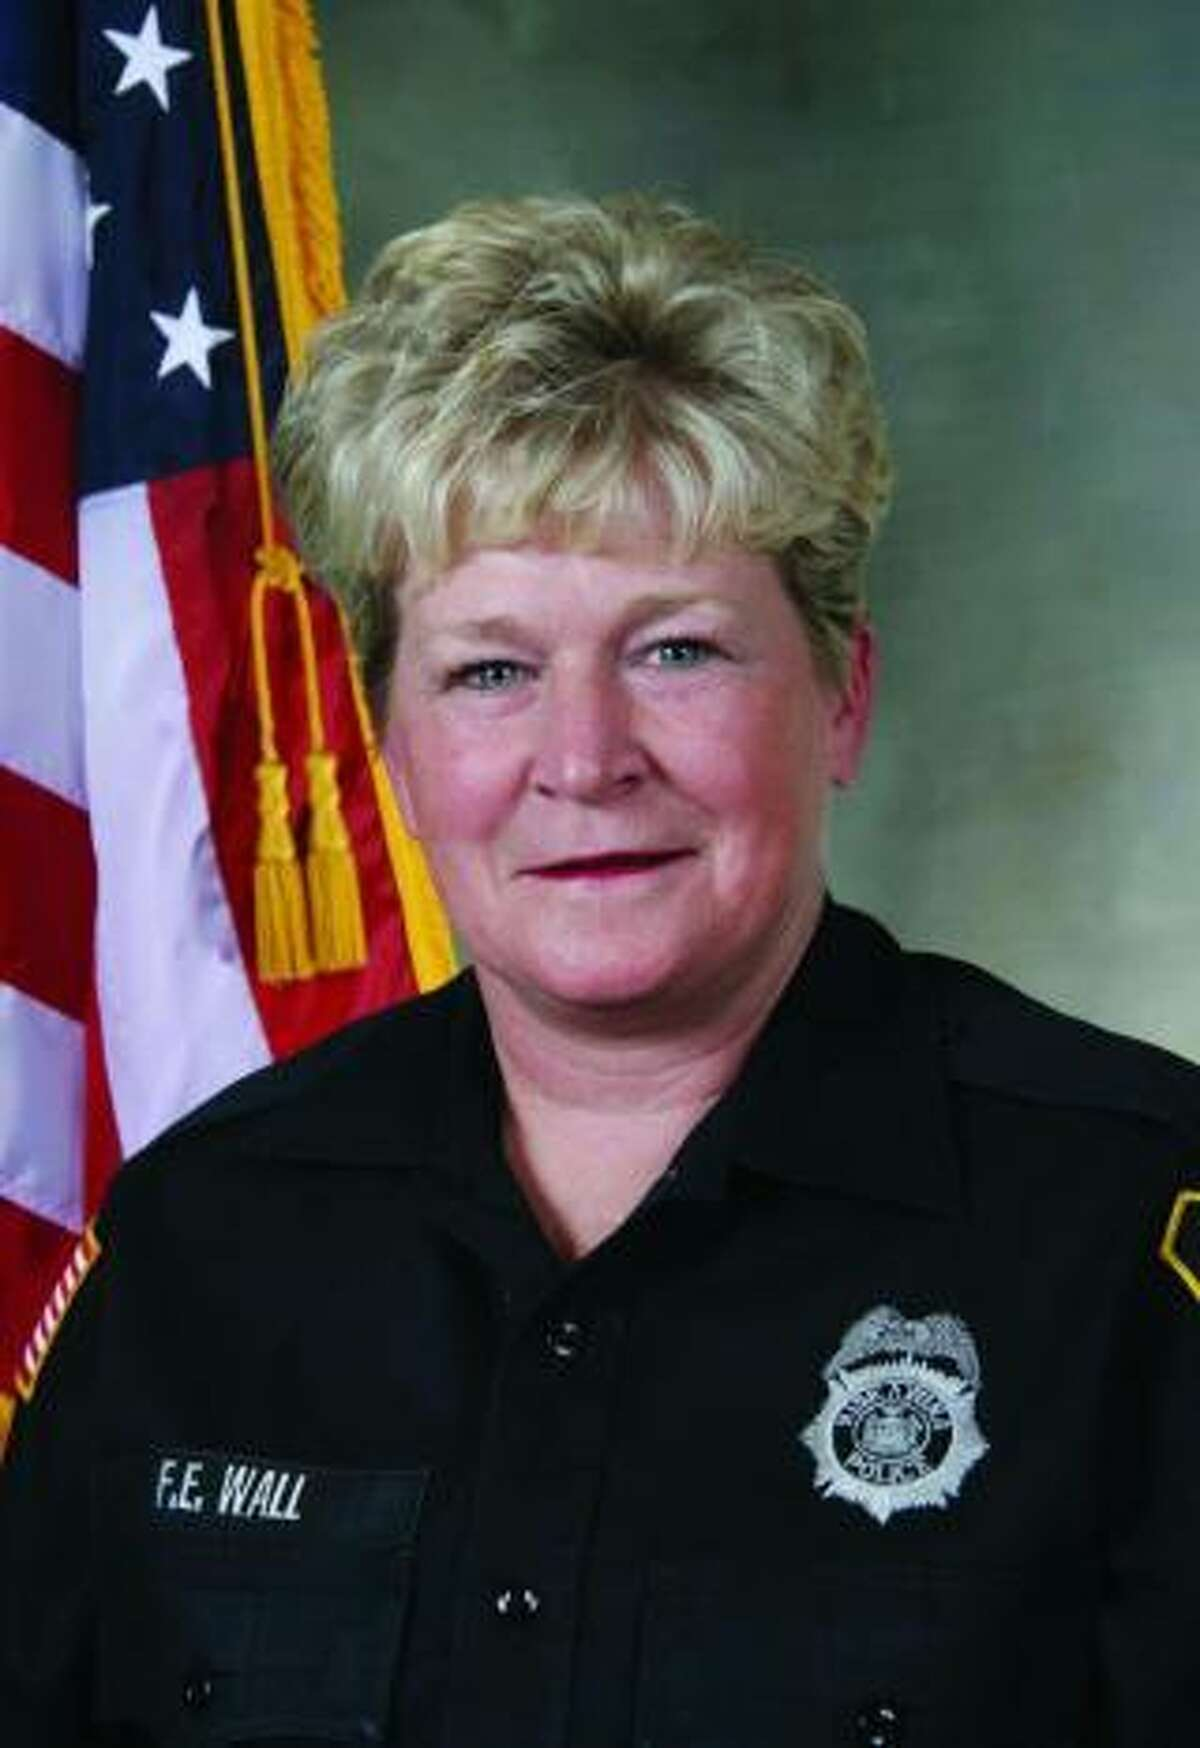 """Saying that her promotion as the first female chief in Schenectady County was """"window dressing"""" and that the town board won't support her efforts to make """"progressive"""" change in the police department, Police Chief Frances Wall resigned in June, less than a year after she took on the top post. A subsequent internal probe the Times Union obtained in July said Wall threatened to kill a fellow Niskayuna employee before she resigned."""